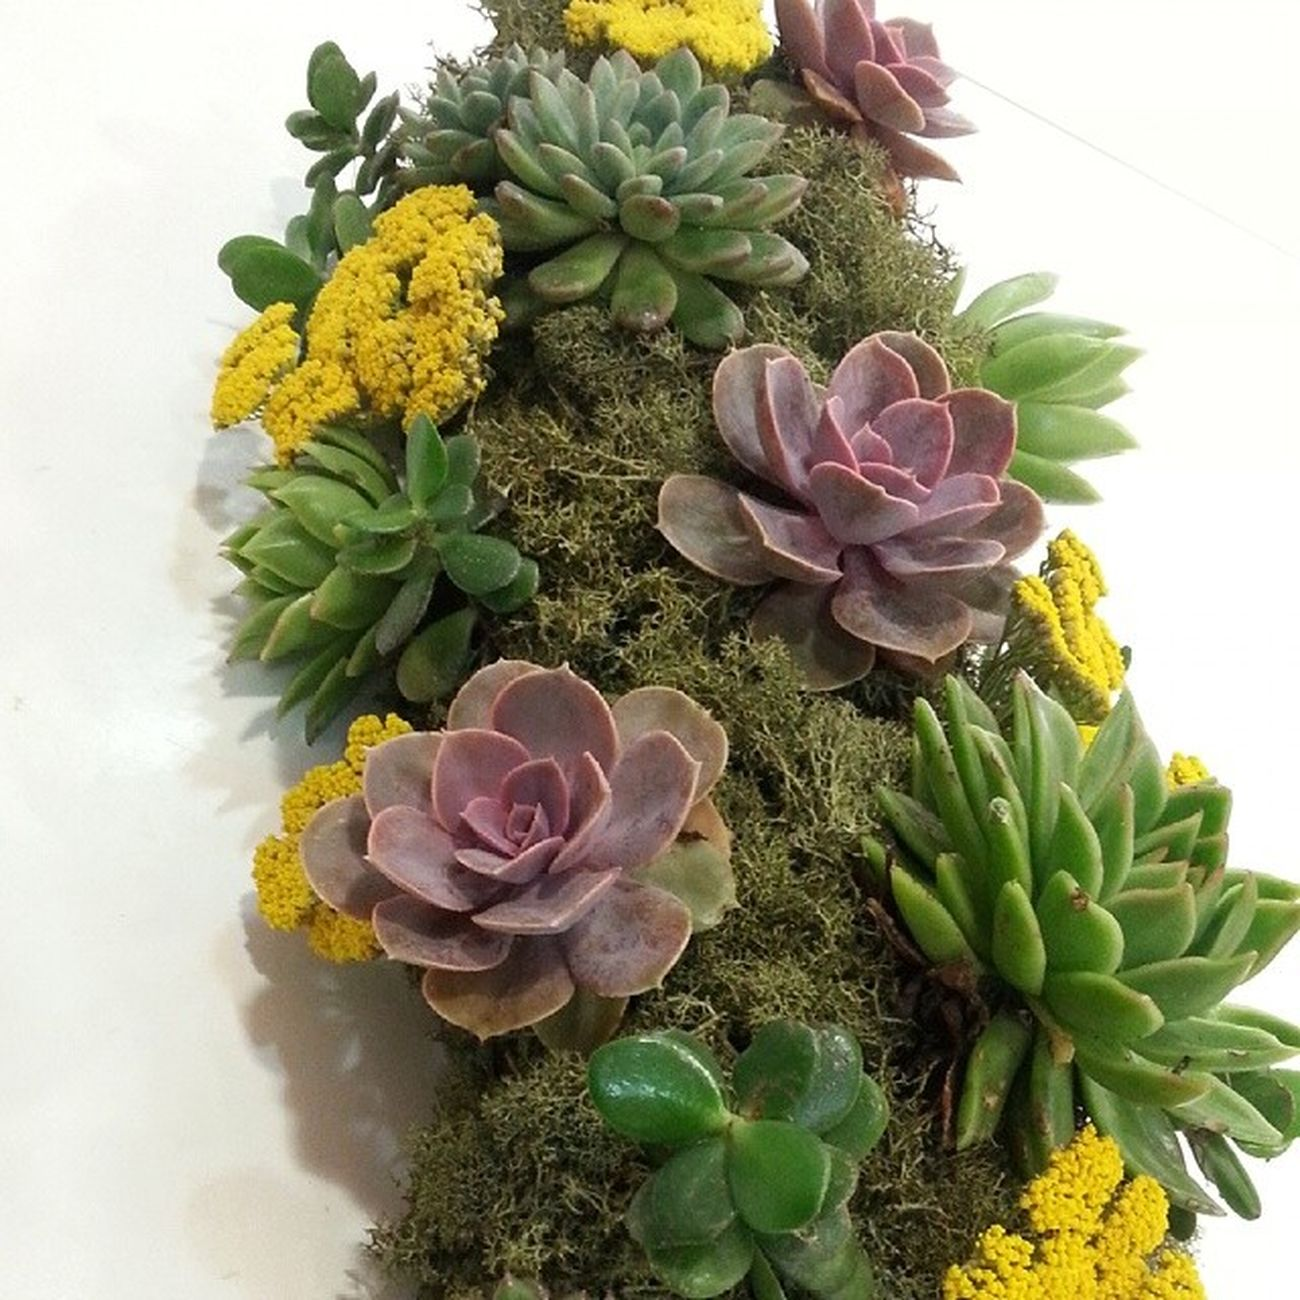 Wedding arrangement for table with succulents and solidago. Arreglo de mesa para boda con crasas y solidago. Flores Aleafloristerias Flowers Wedding Bodas Vigo Succulents Crasas Arrangement Arreglo Solidago Moss